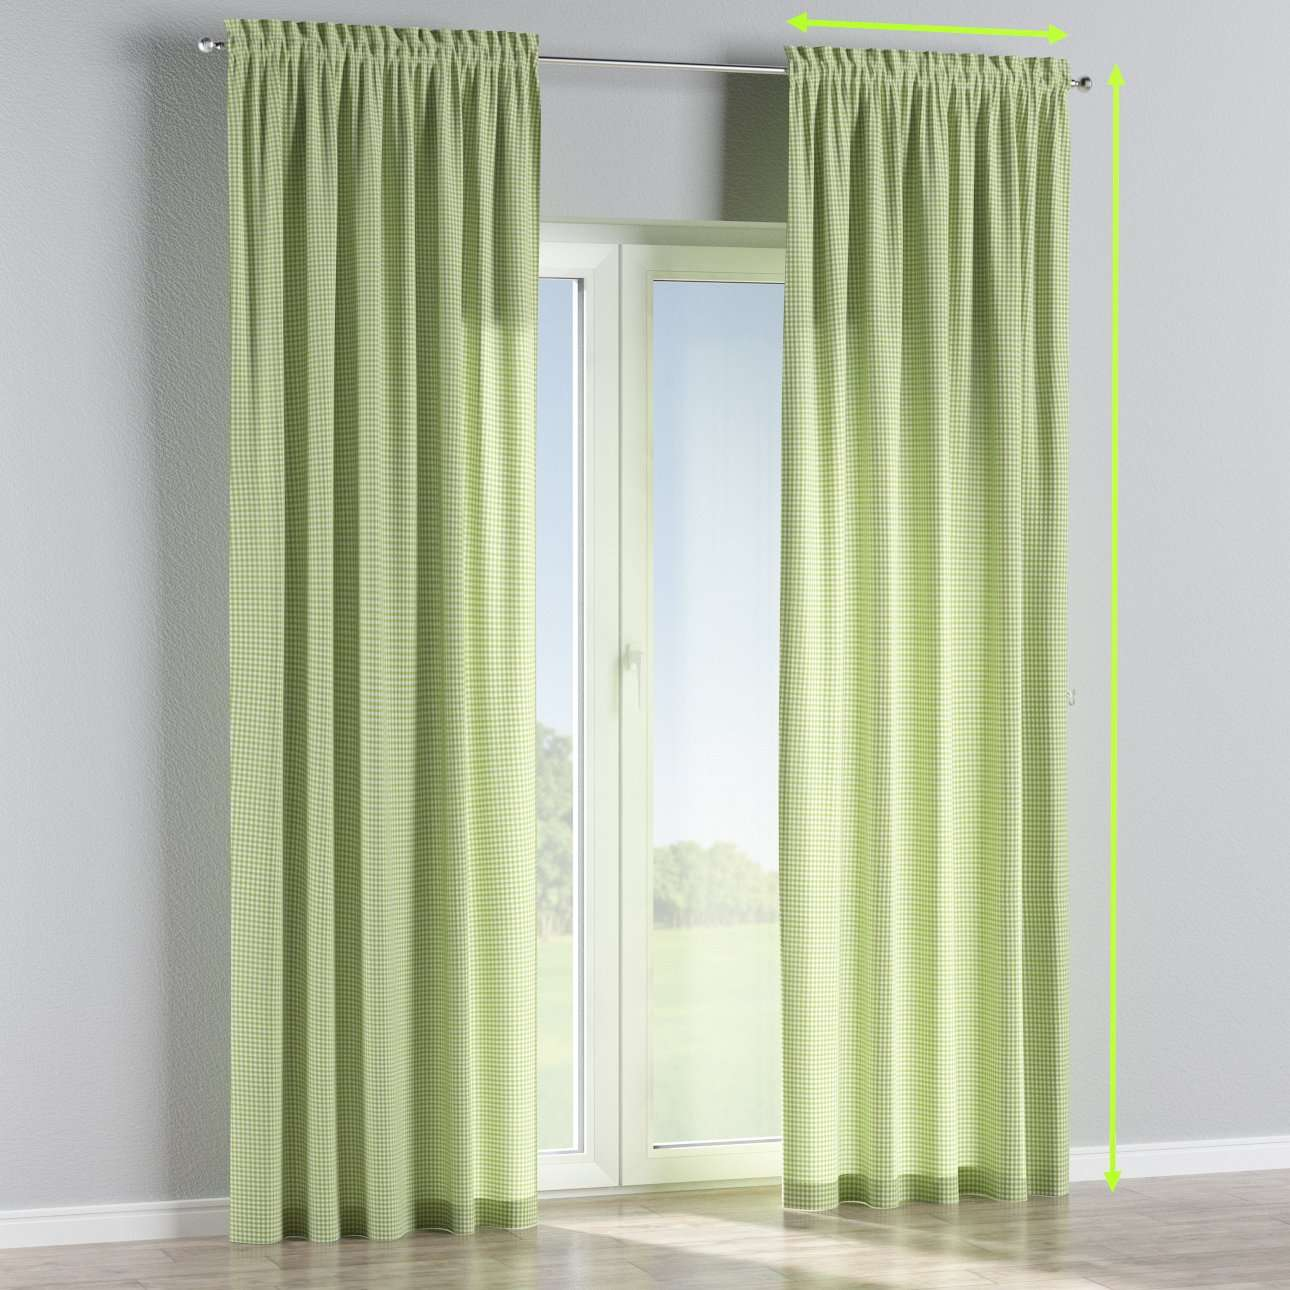 Slot and frill lined curtains in collection Quadro, fabric: 136-33